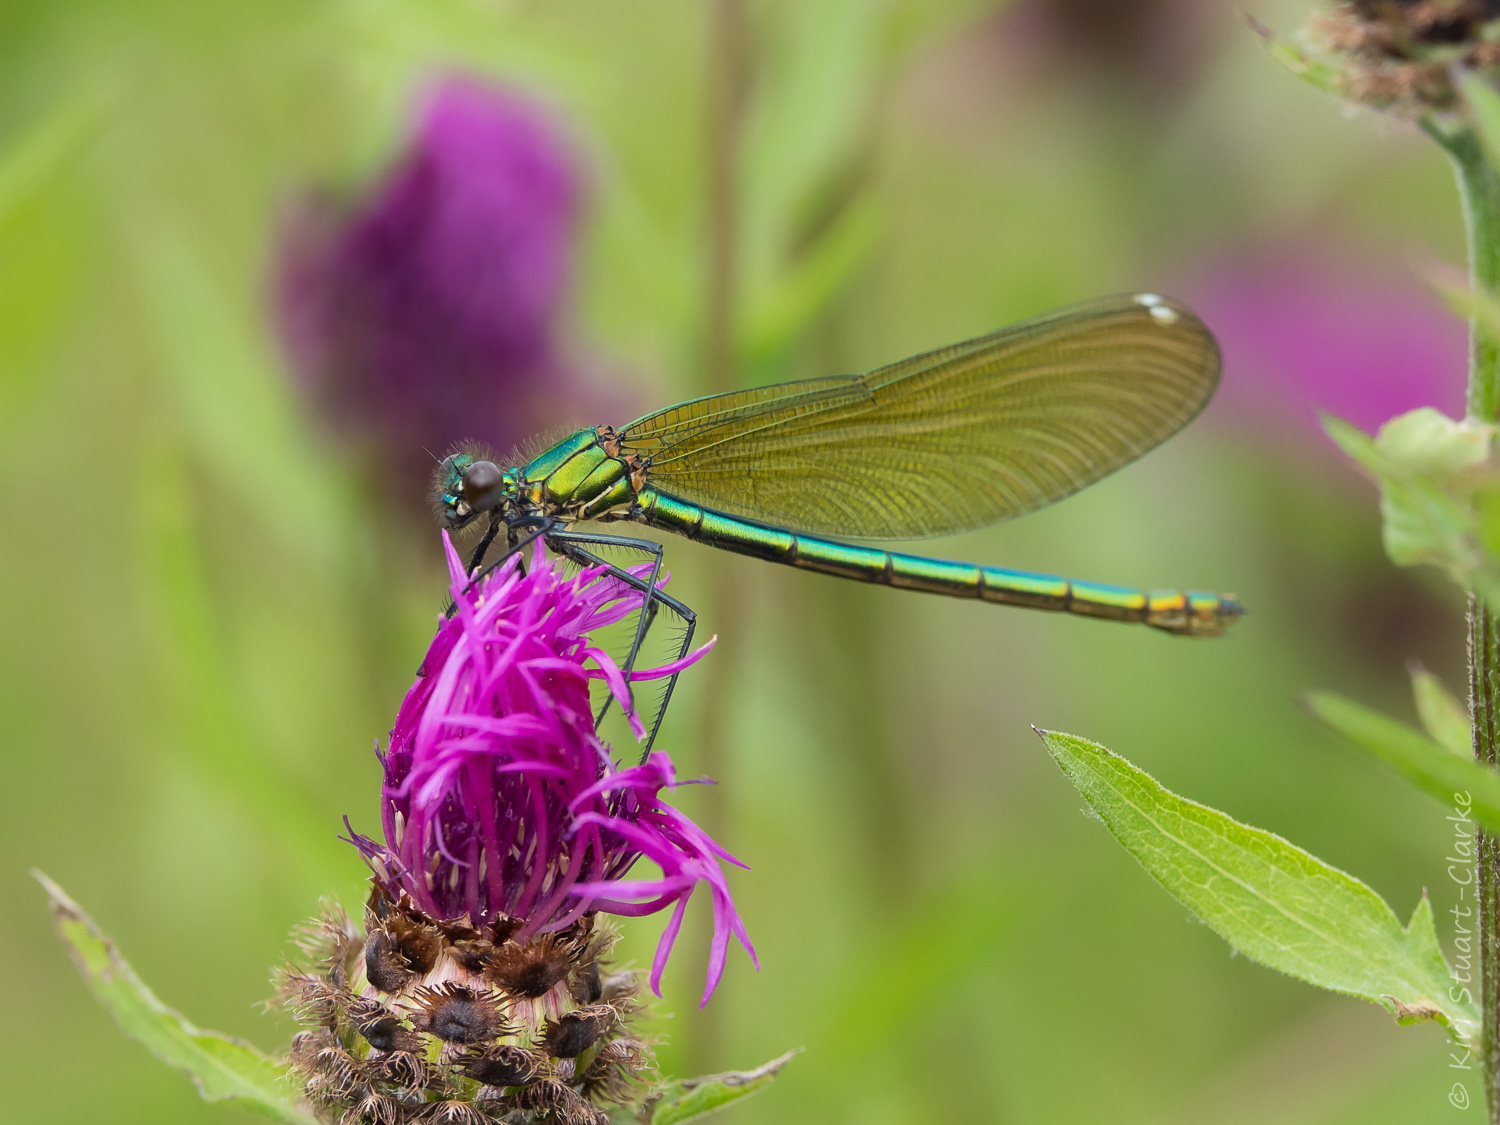 Female Banded Demoiselle,  Calopteryx splendens , perched on Common Knapweed